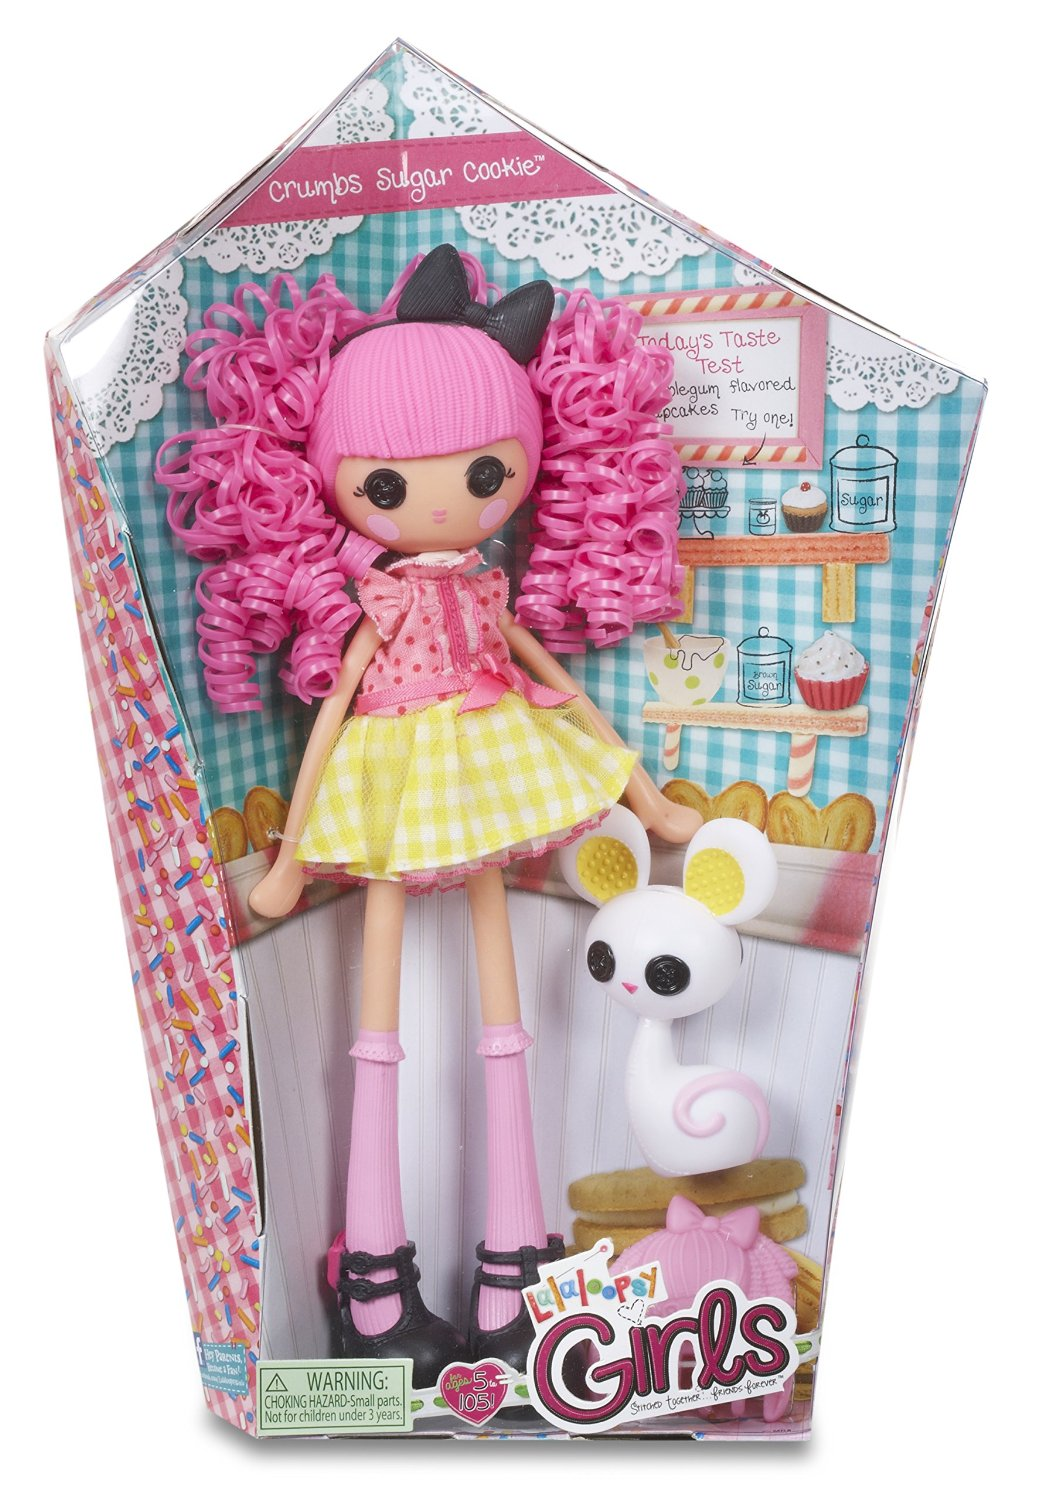 Lalaloopsy Crumbs Sugar Cookie Target Lalaloopsy Girls Crumbs Sugar